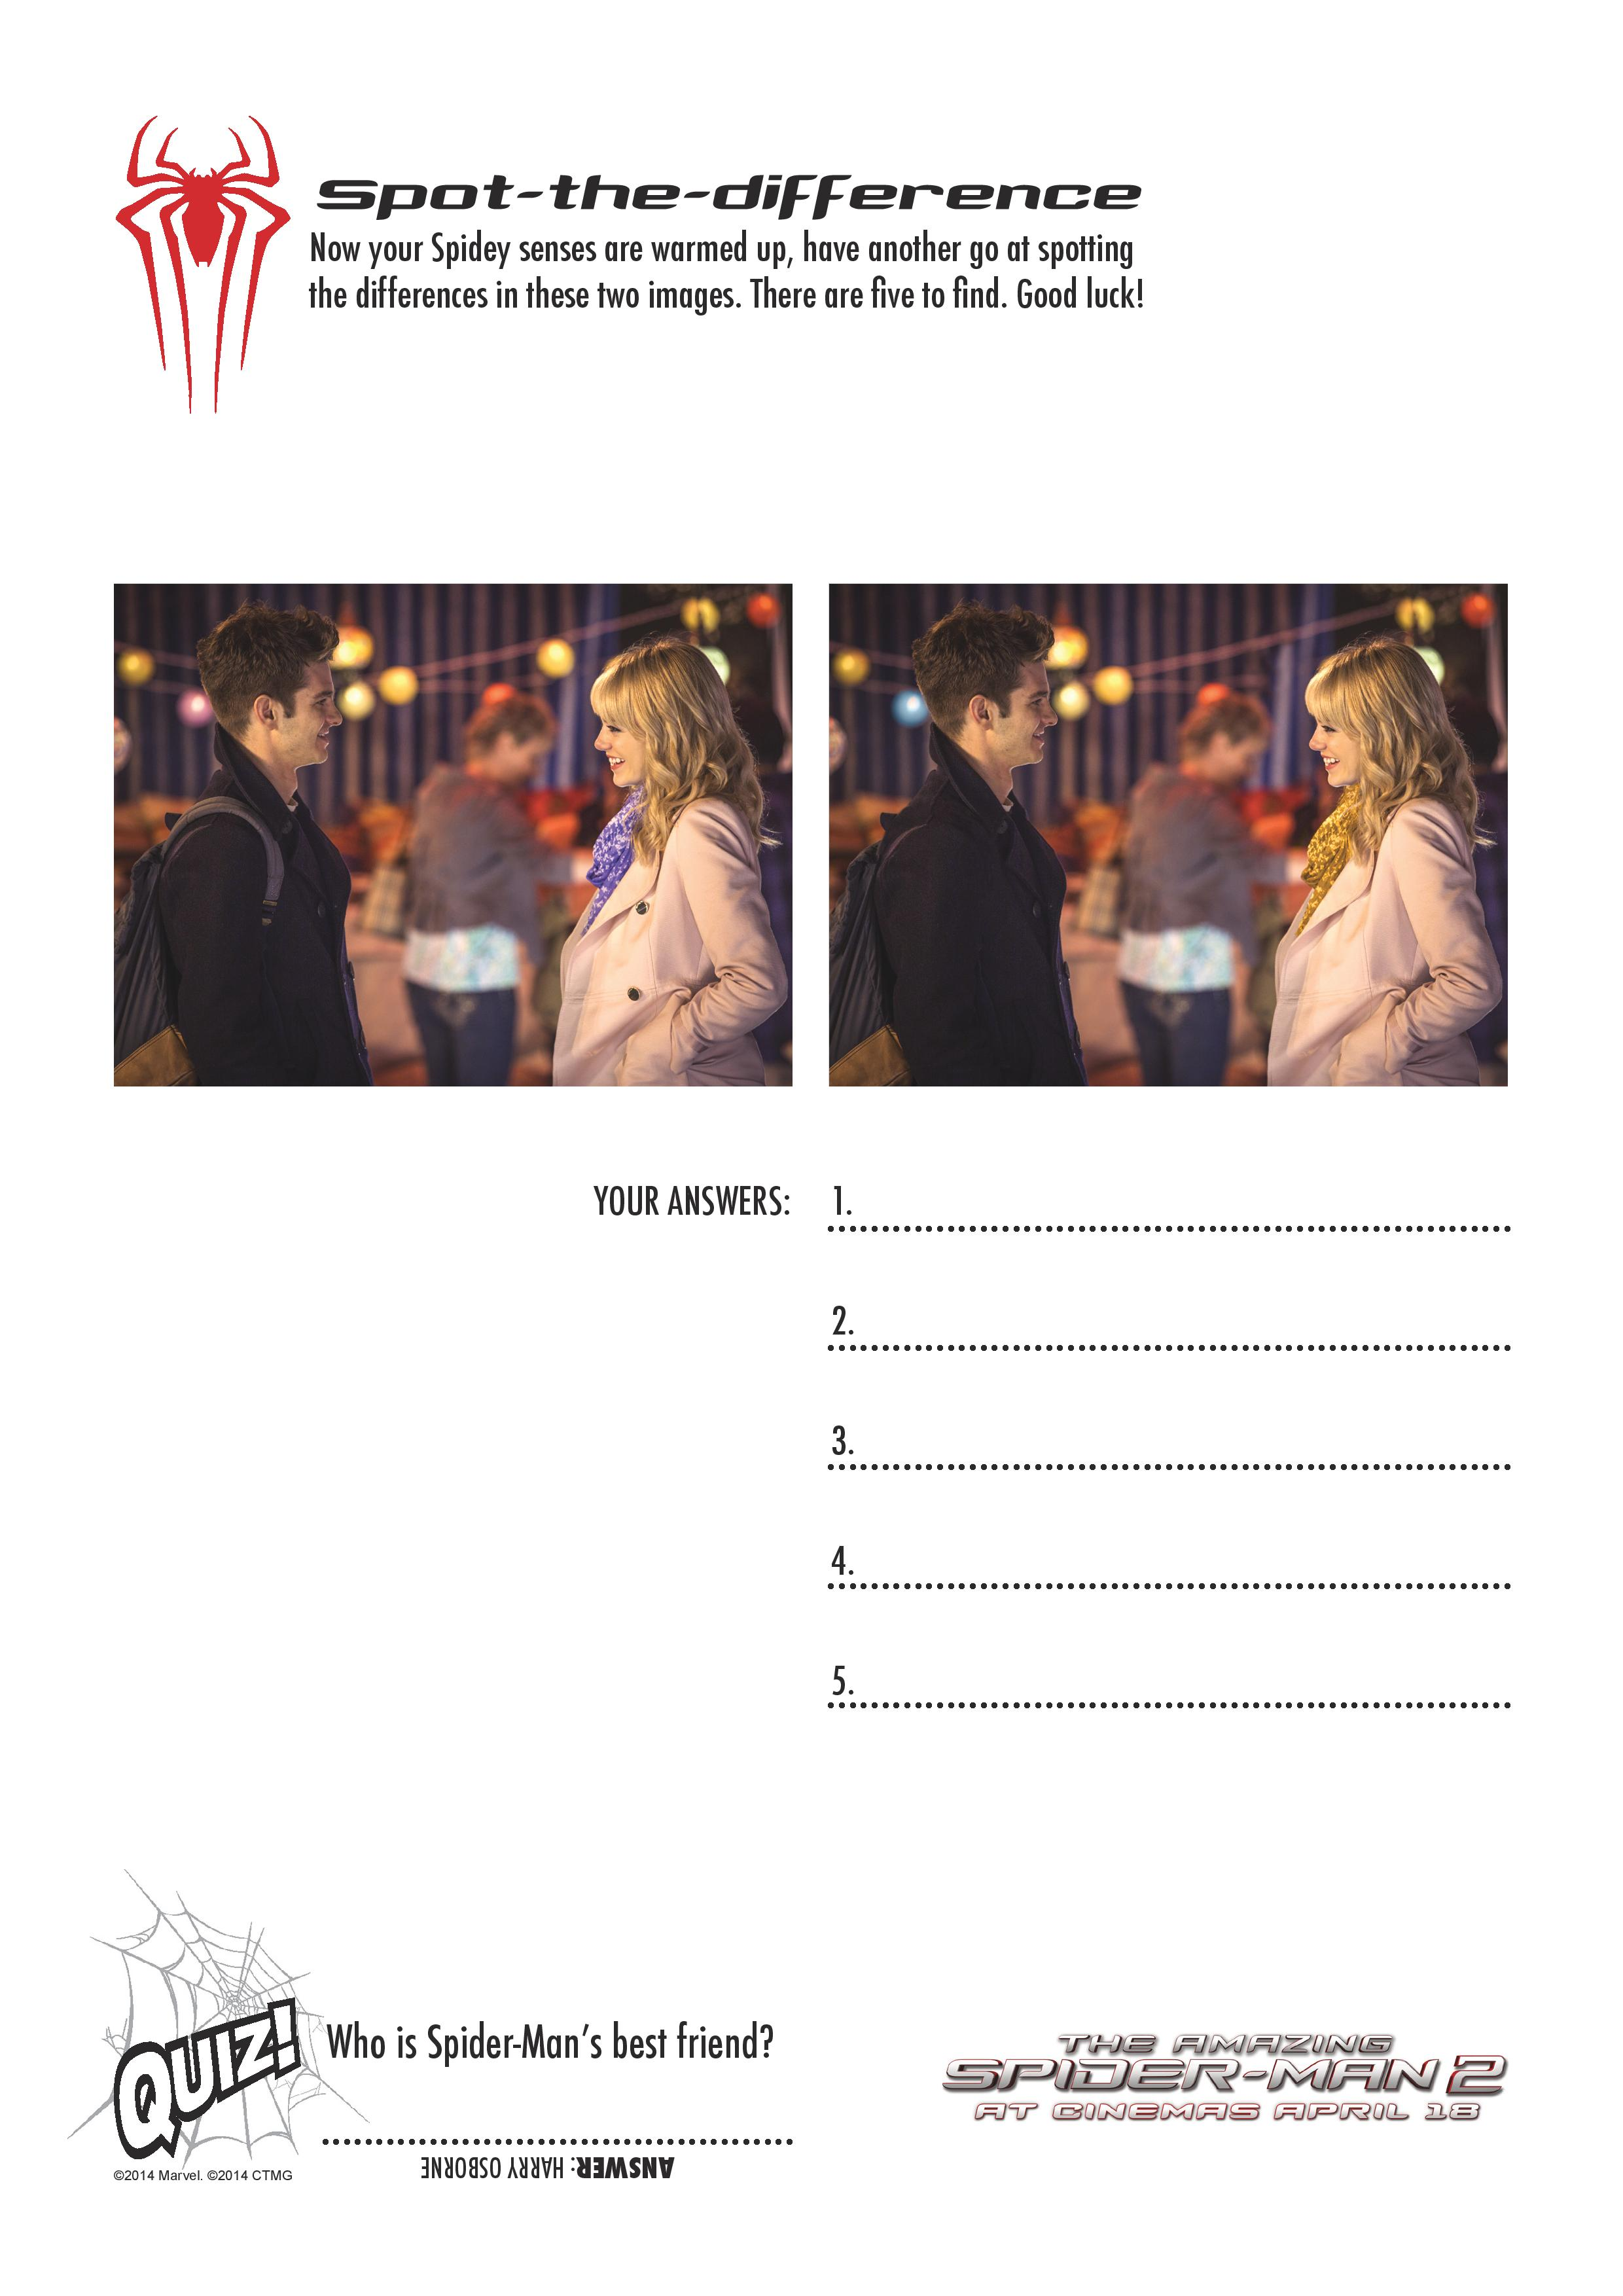 spiderman2_activity_pack_v4.1-page-007